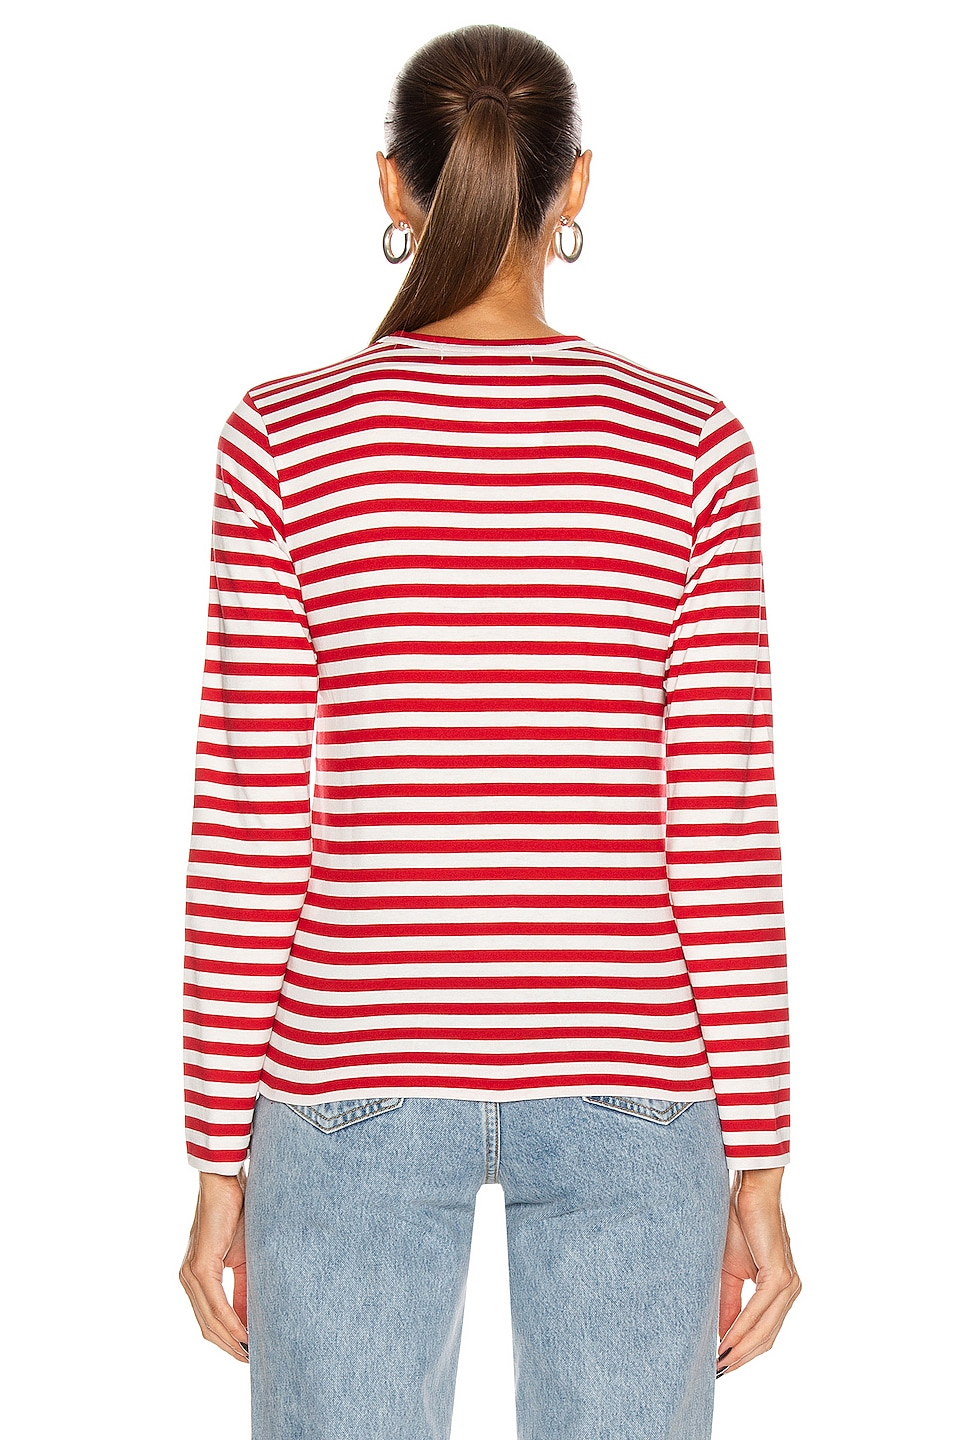 Image 3 of Comme Des Garcons PLAY Striped Cotton Red Emblem Tee in Red & White